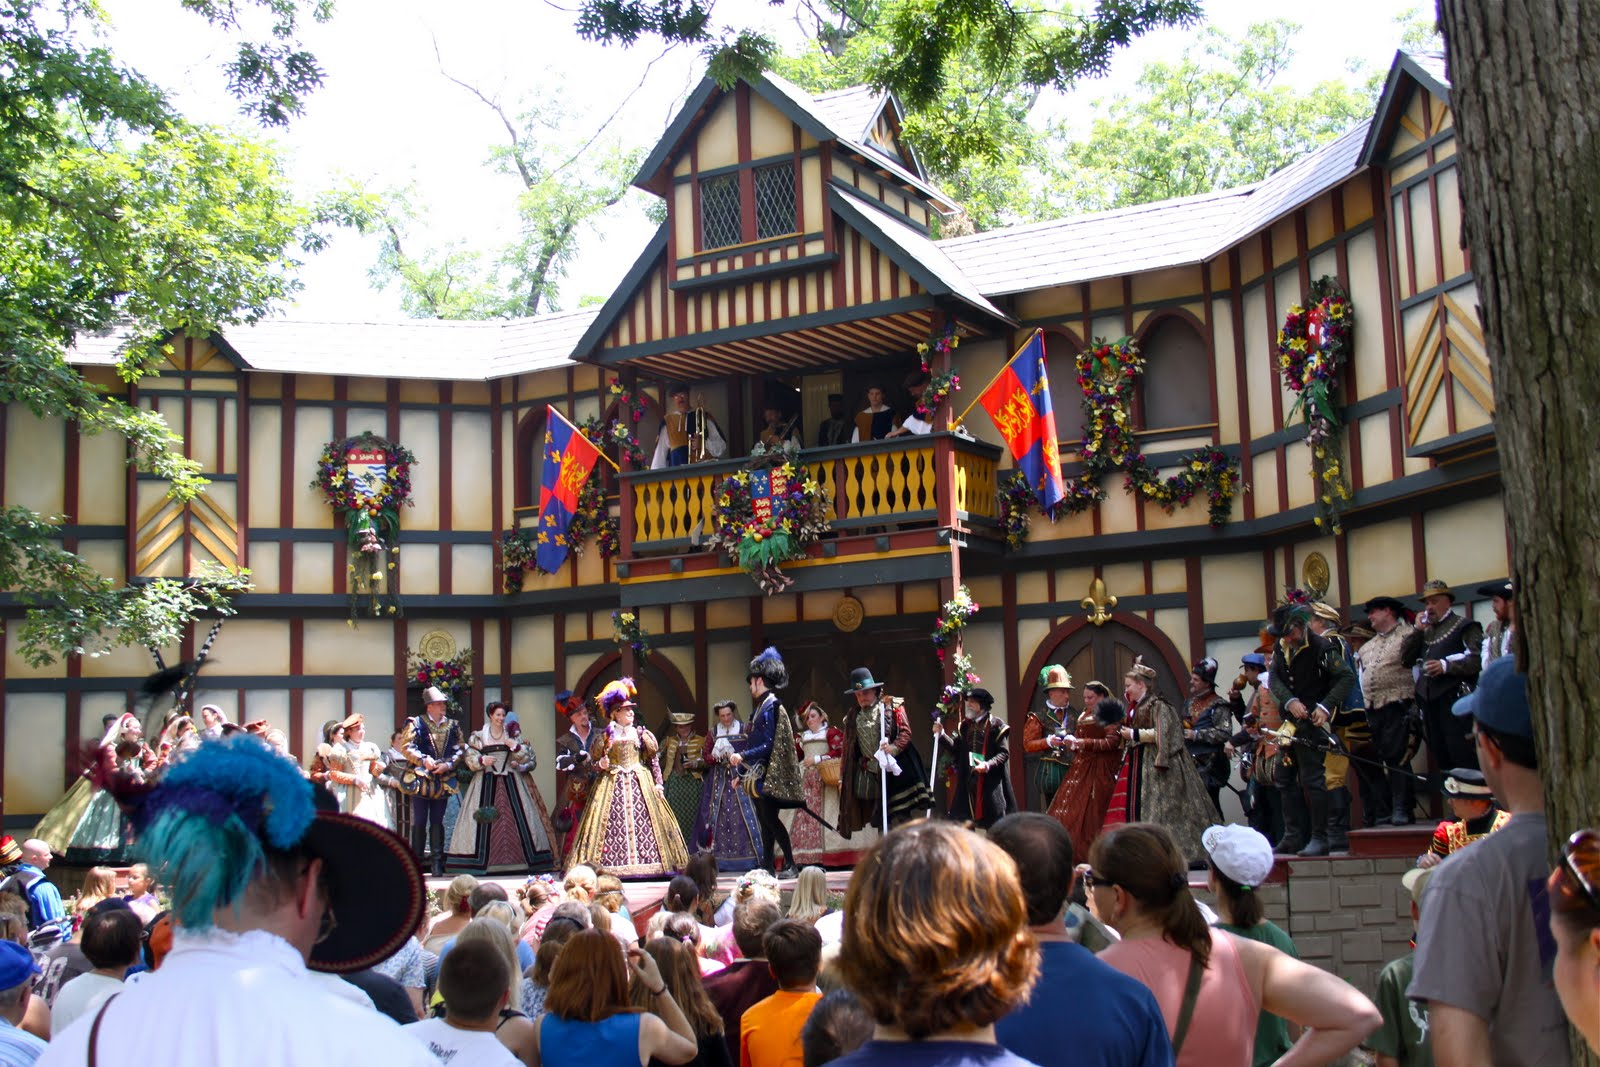 Renaissance Fairs: Bristol Renaissance Faire Pulls Out All The Stoppes For